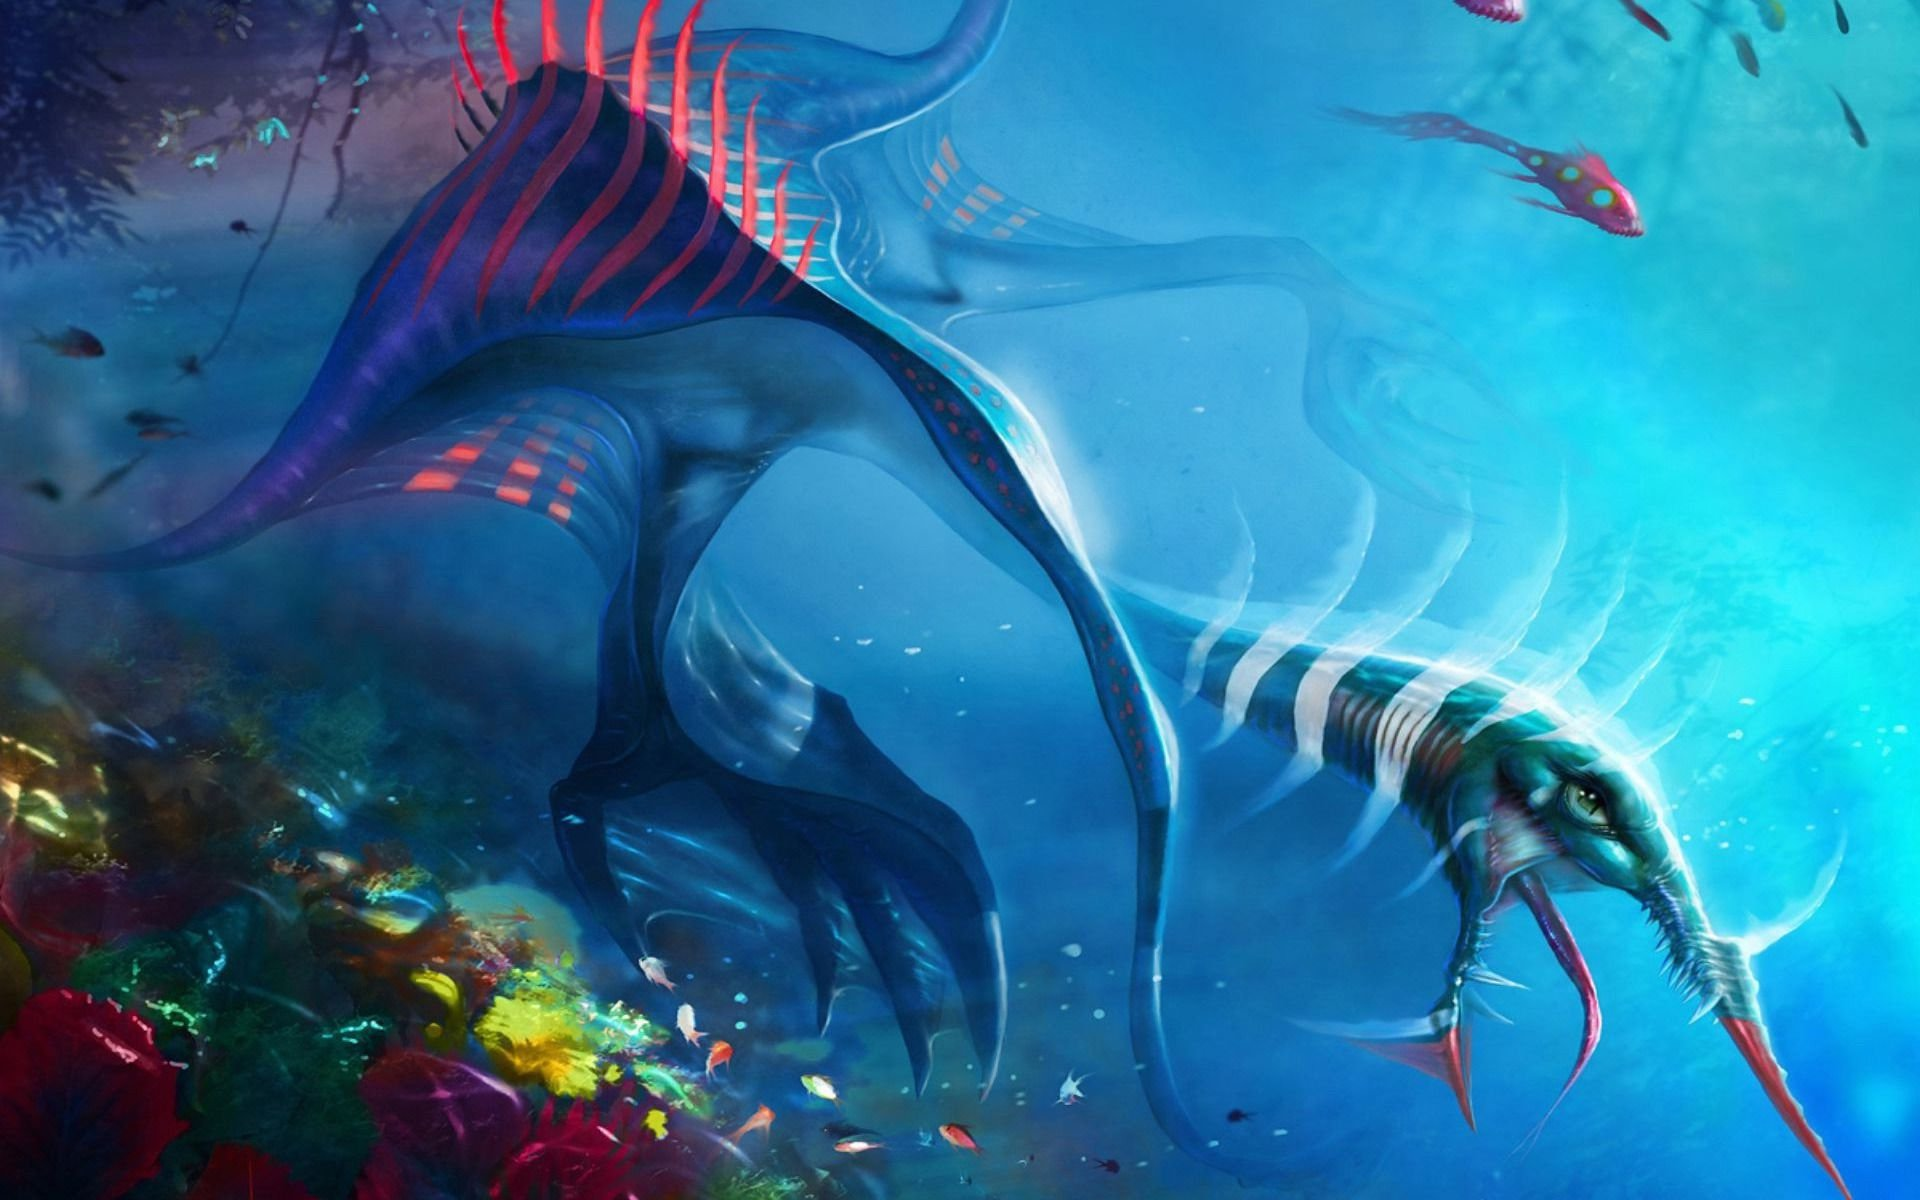 Fantasy - Sea Monster  Creature Underwater Wallpaper